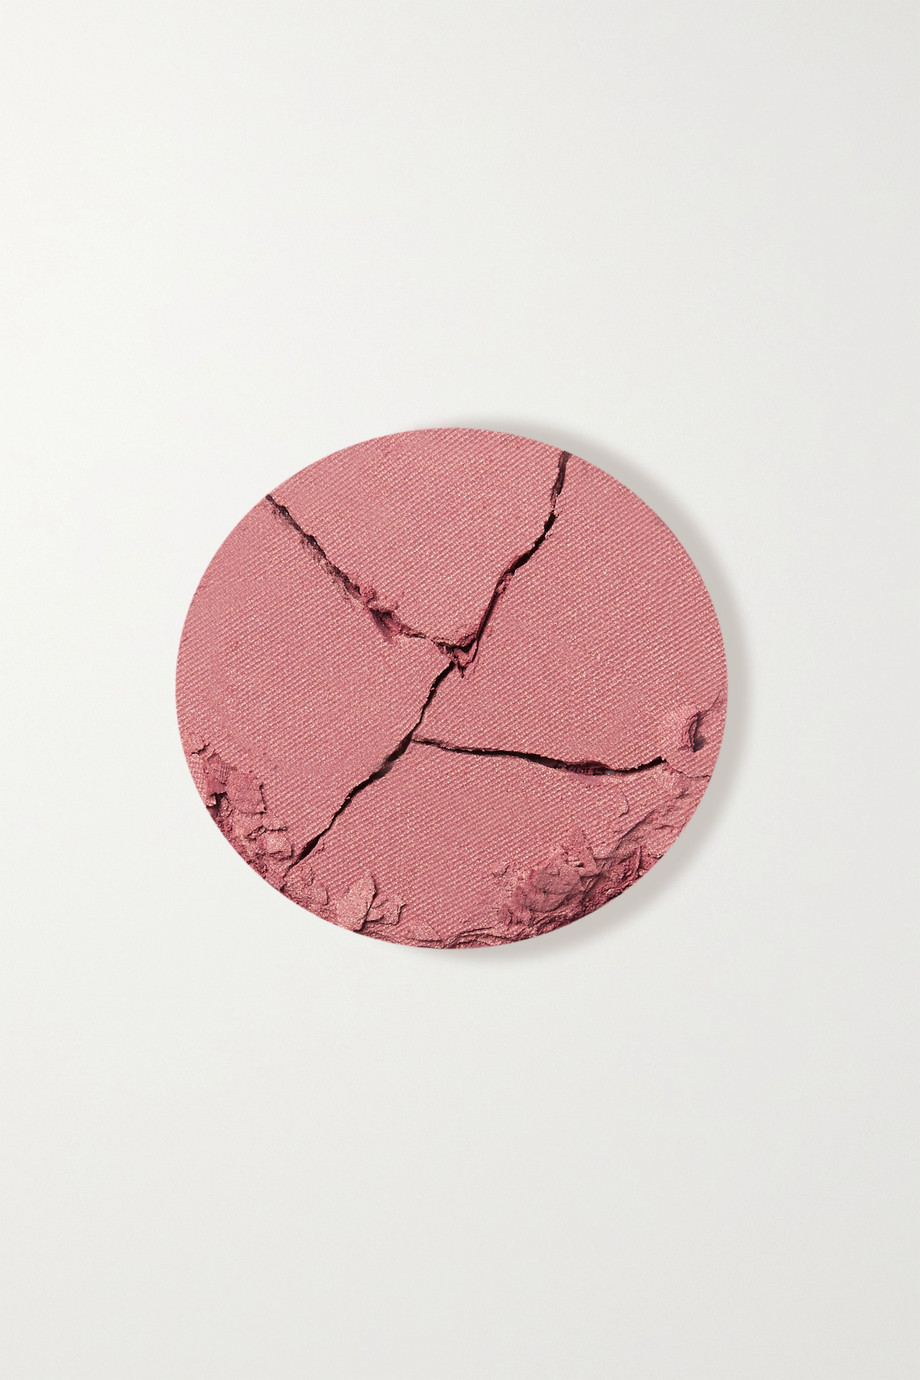 Vapour Beauty Blush Powder - Smitten